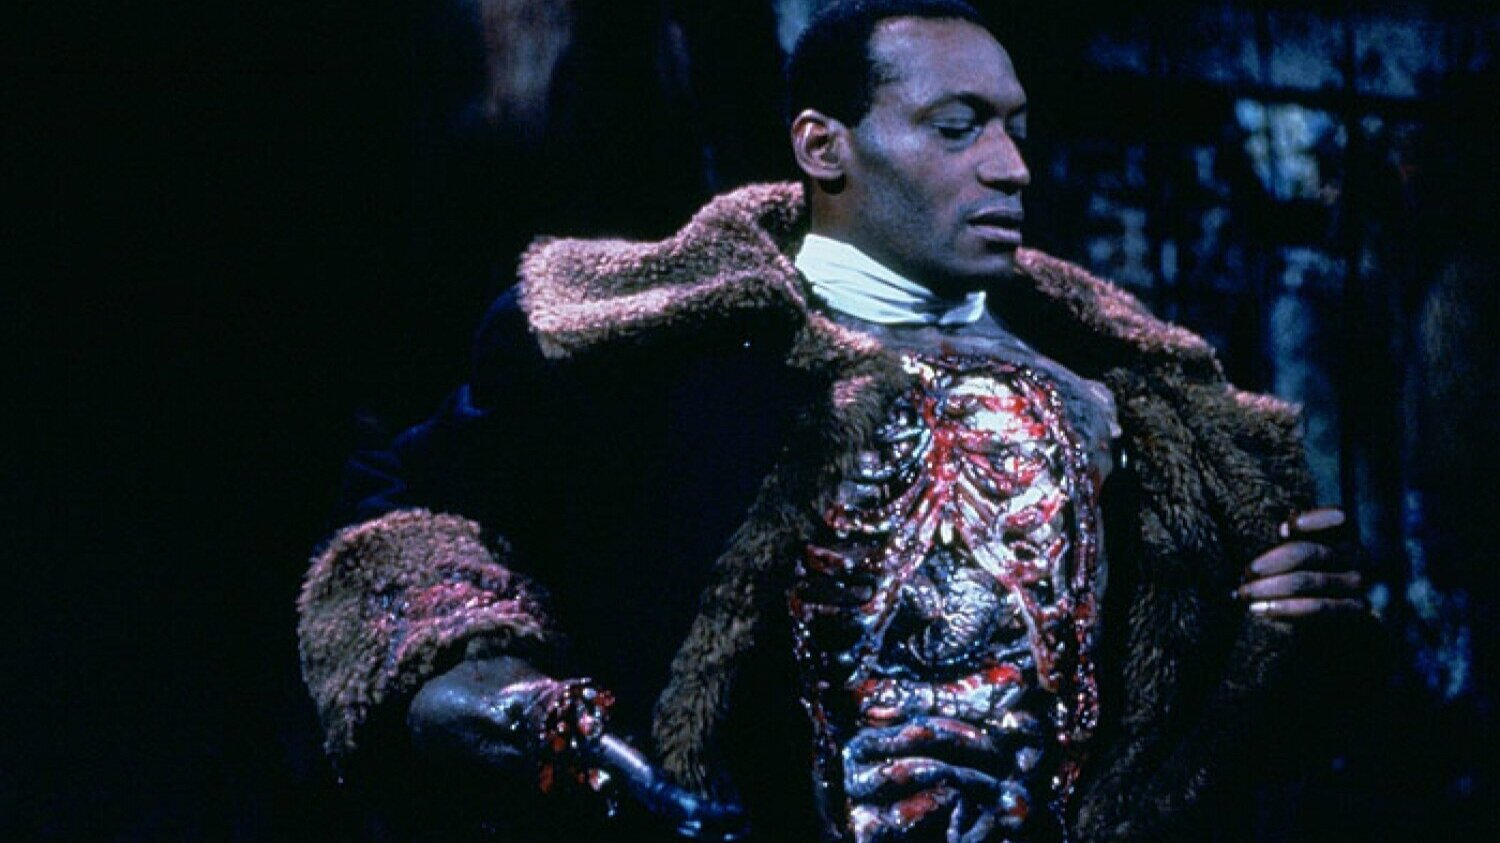 Candyman  (1992) is streaming on Netflix.